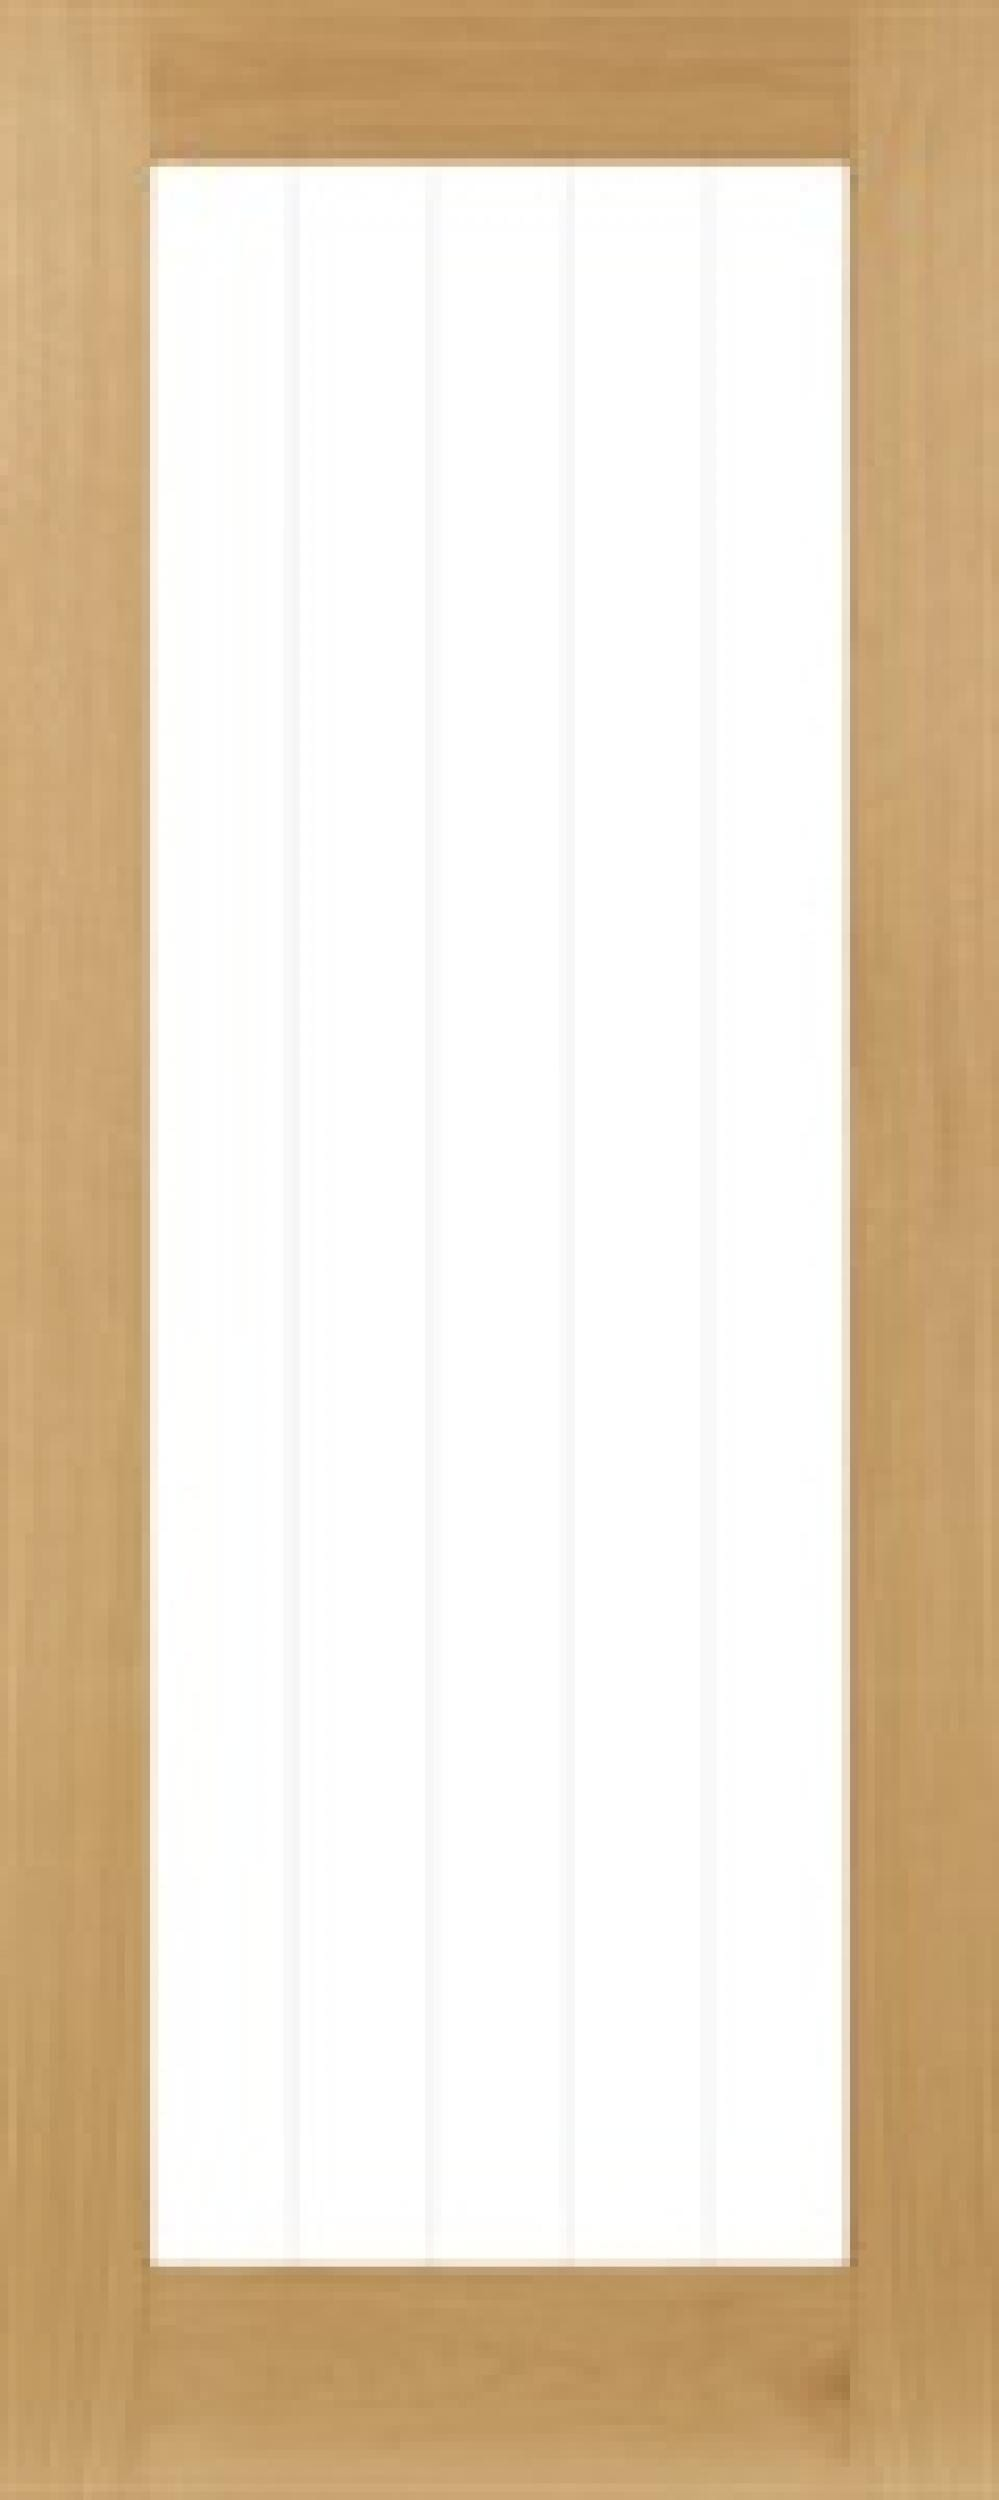 Ely Glazed 1l Door Prefinished  Image